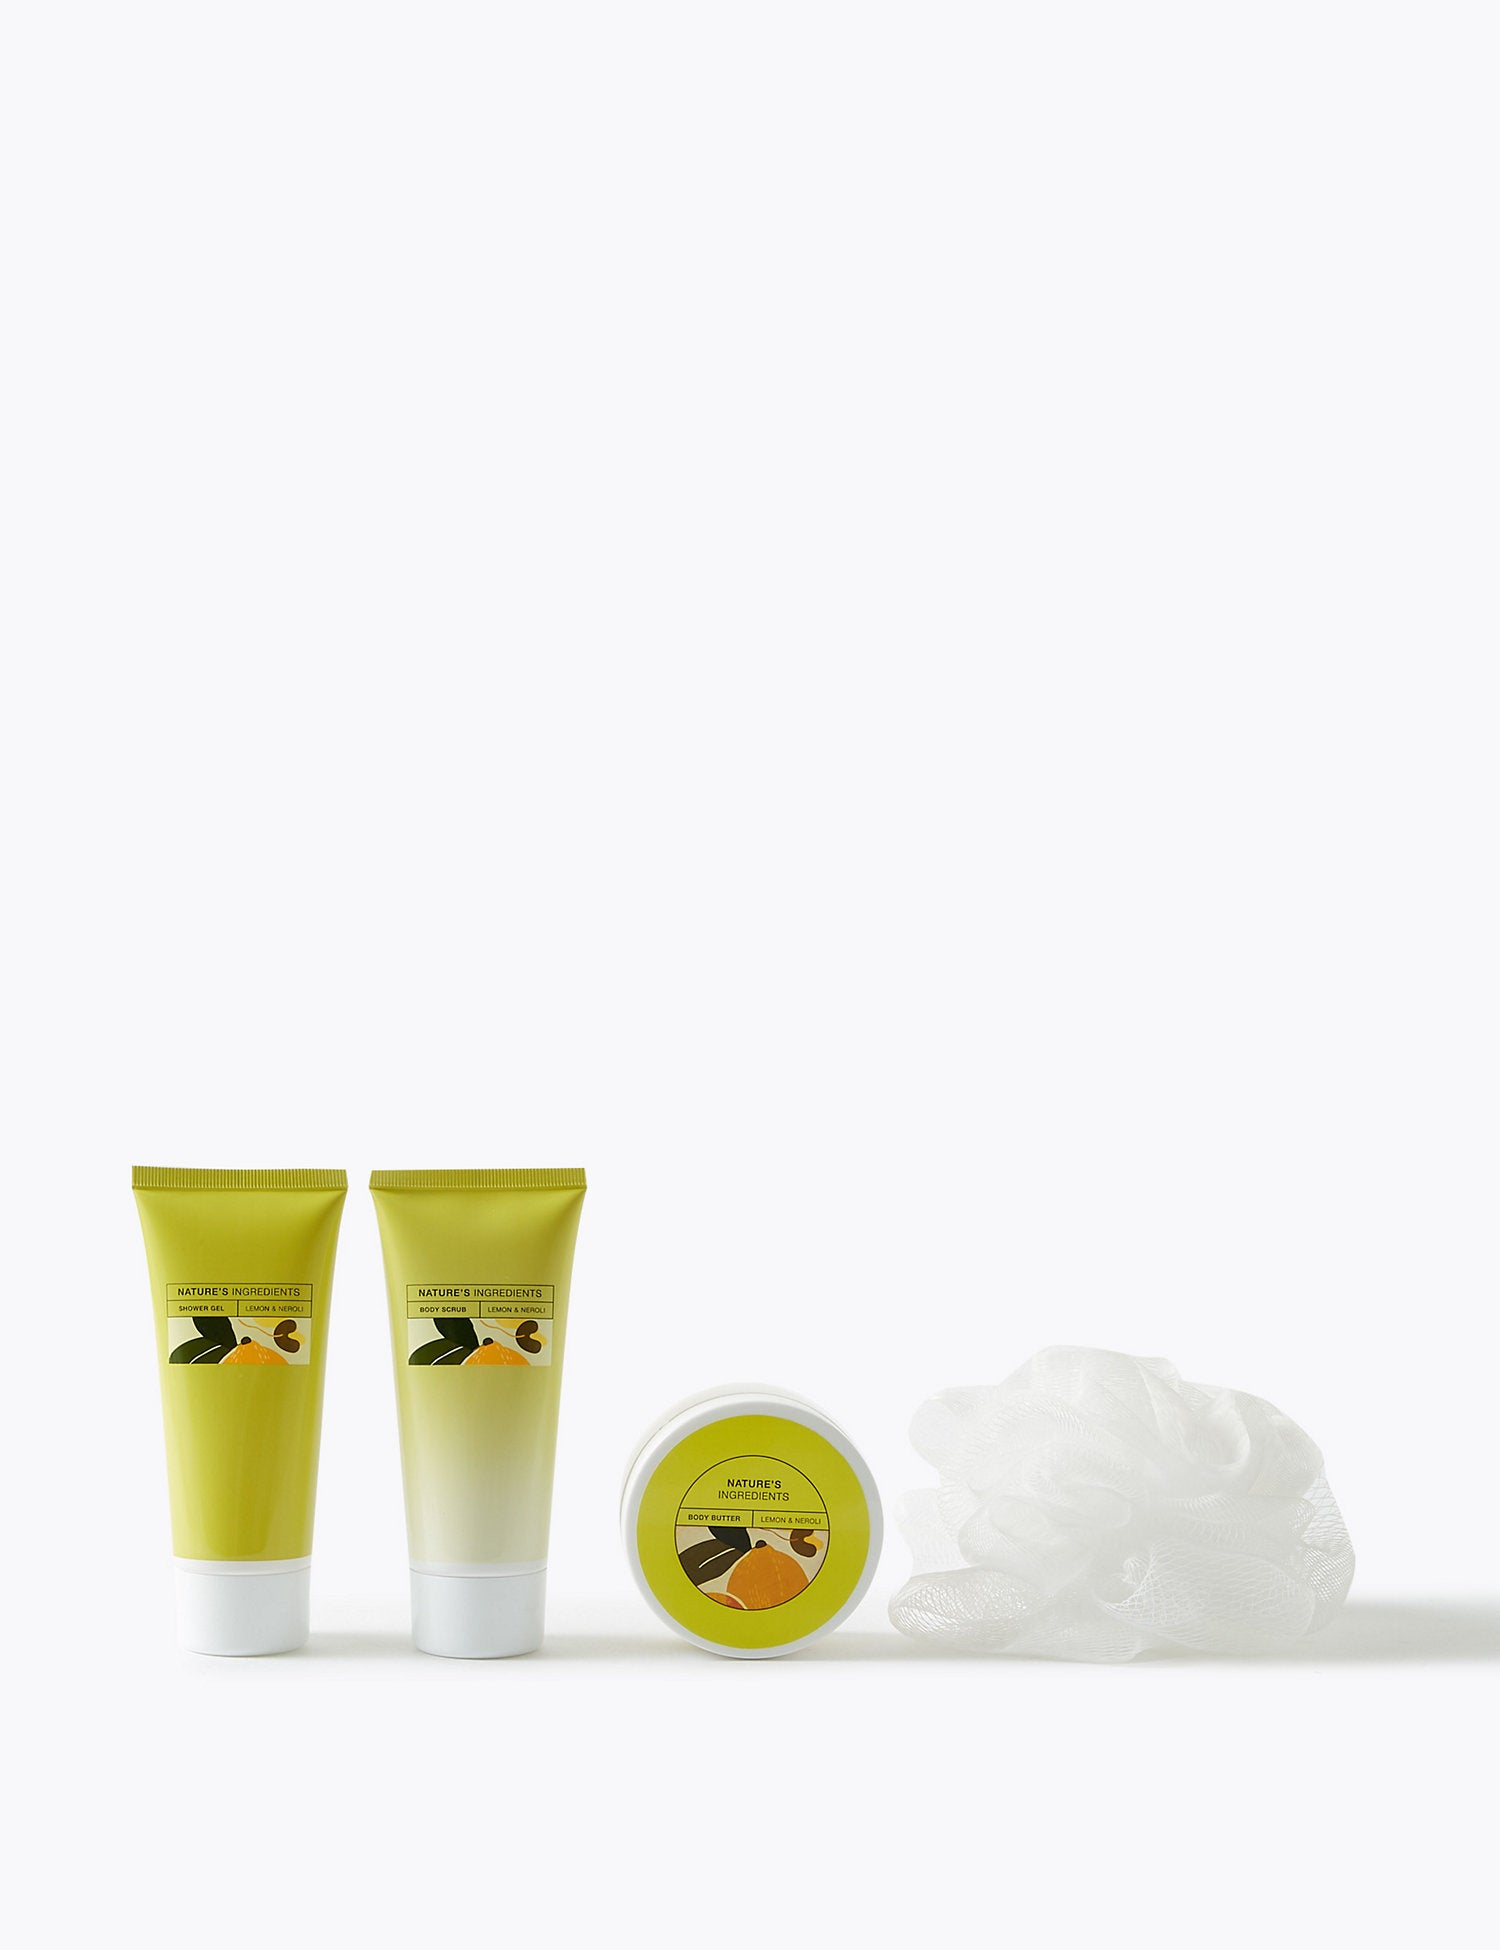 Lemon & Neroli Body Care Set